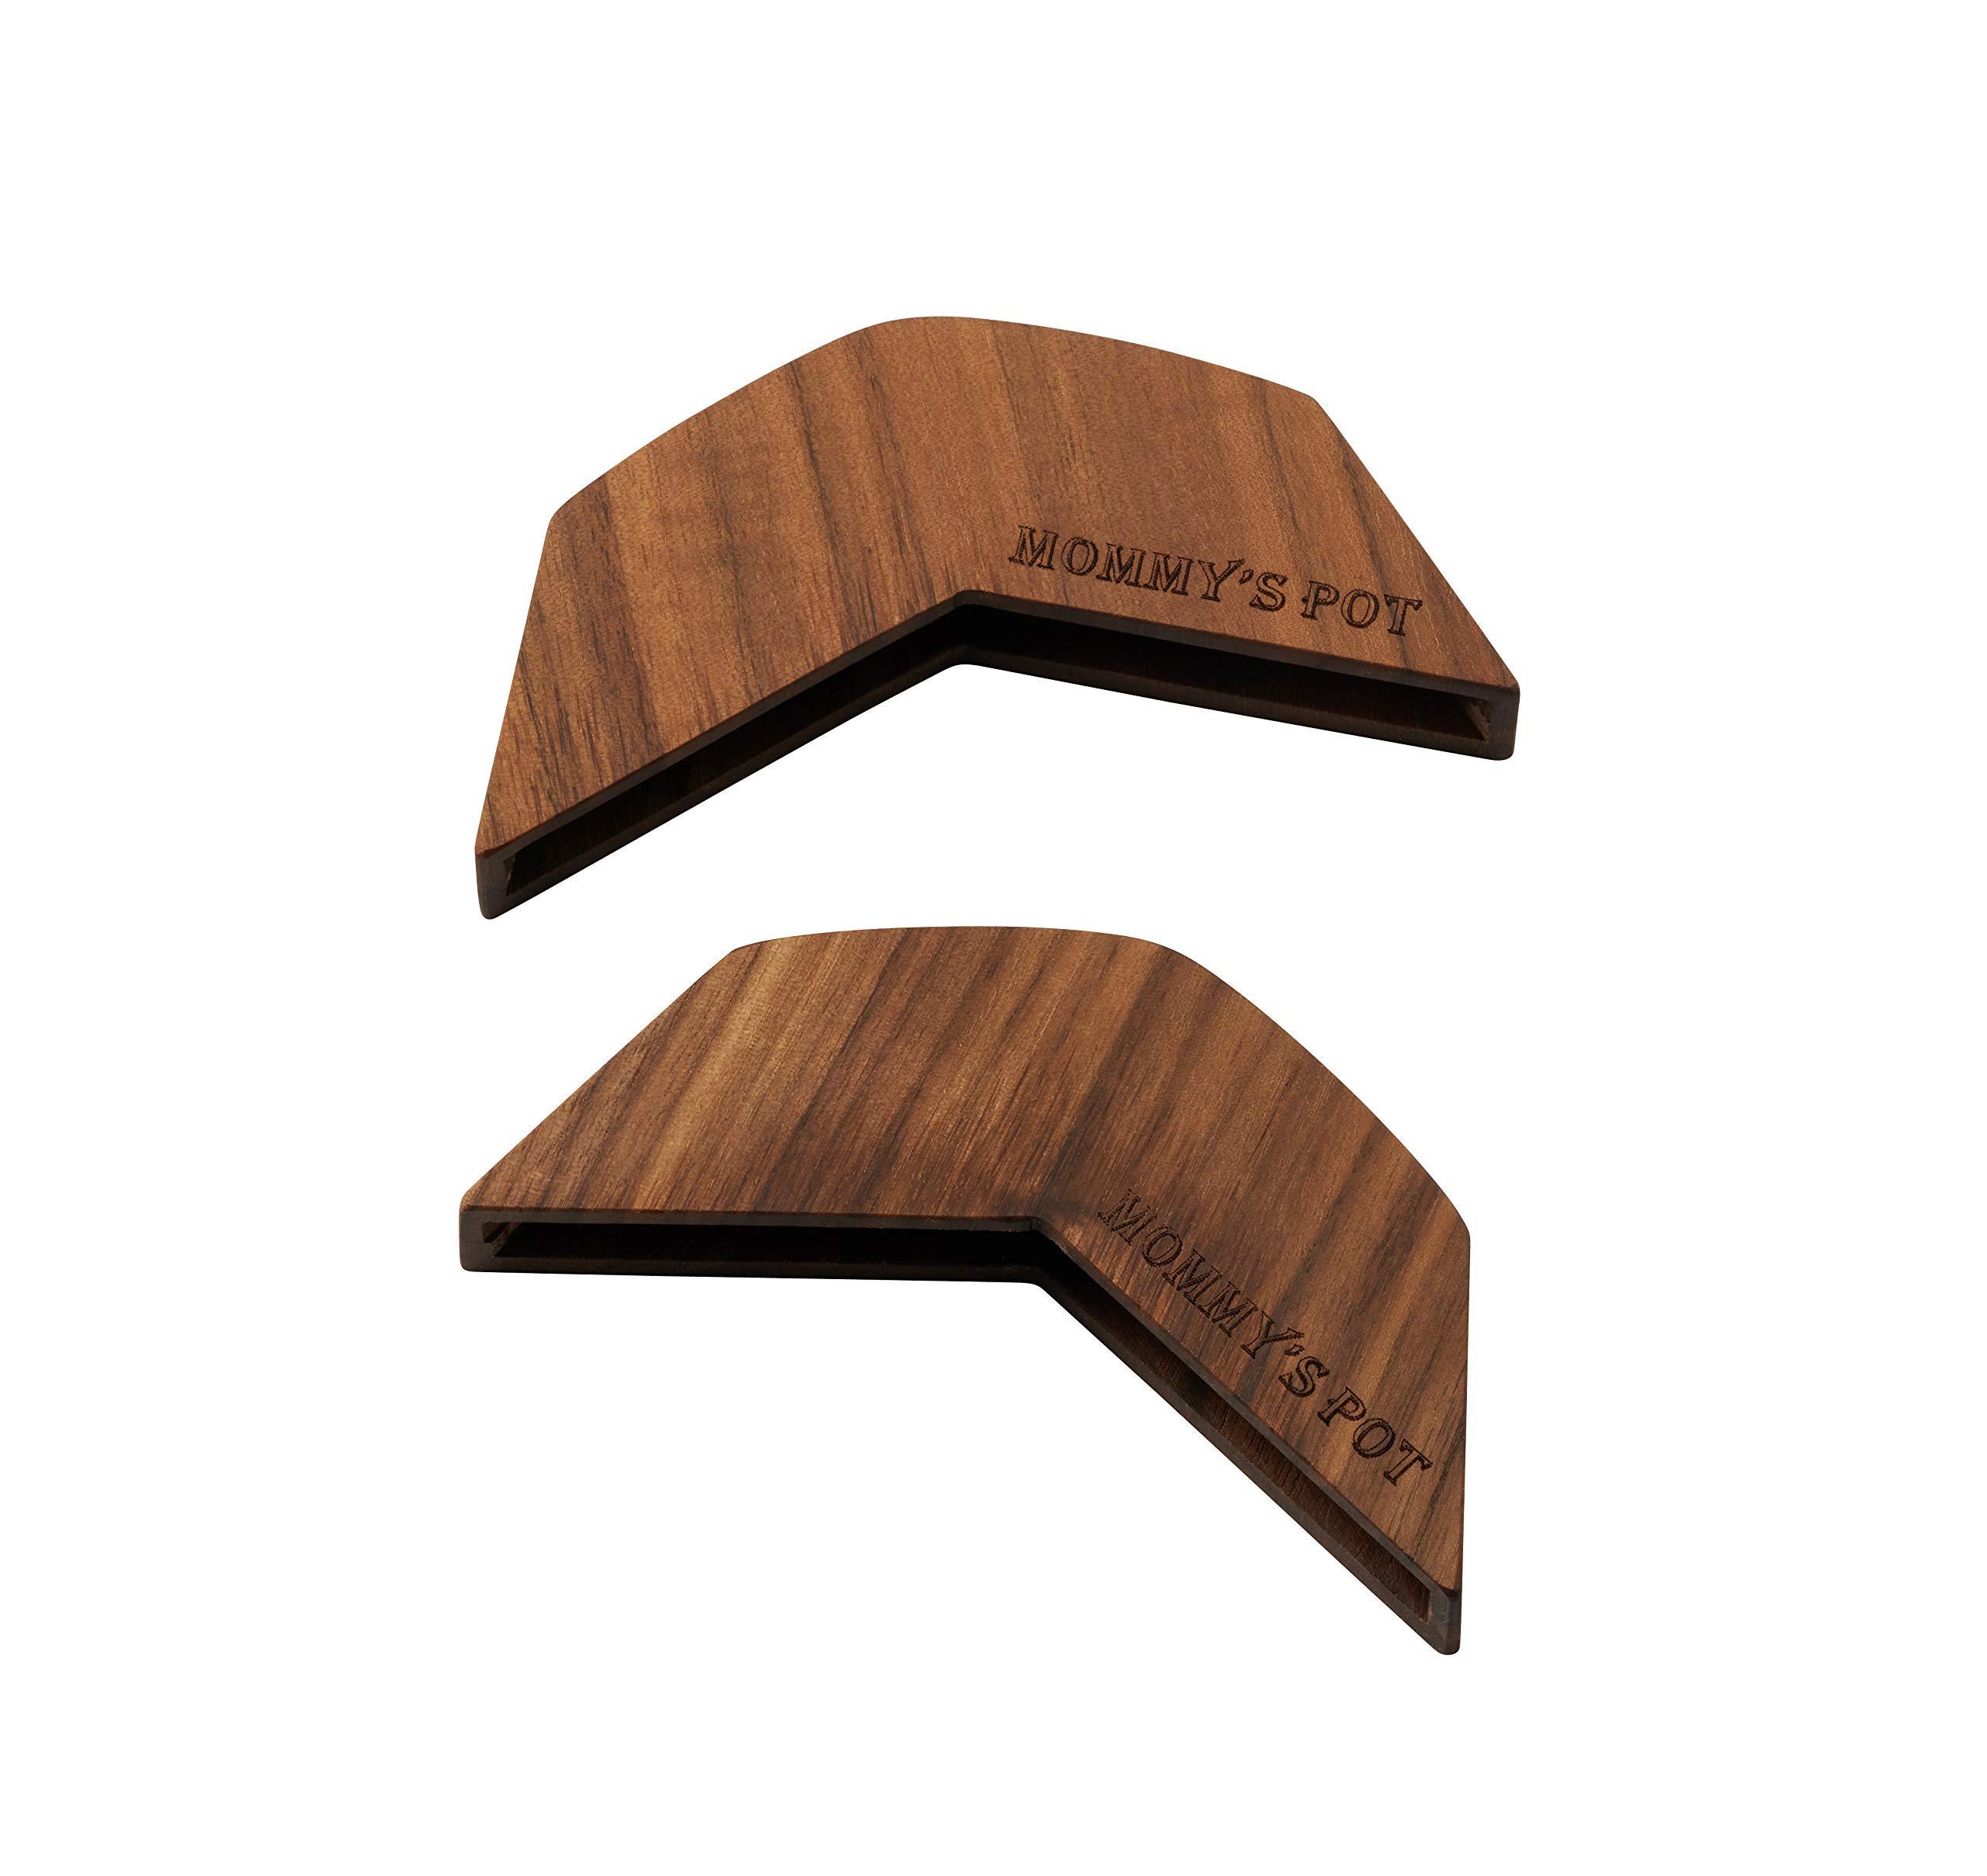 MommysPOT Wood Hot Handle Cover/Holder, Walnut - Only Dutch Oven, Gratin, Grill Pan (11 x 4 x 2)